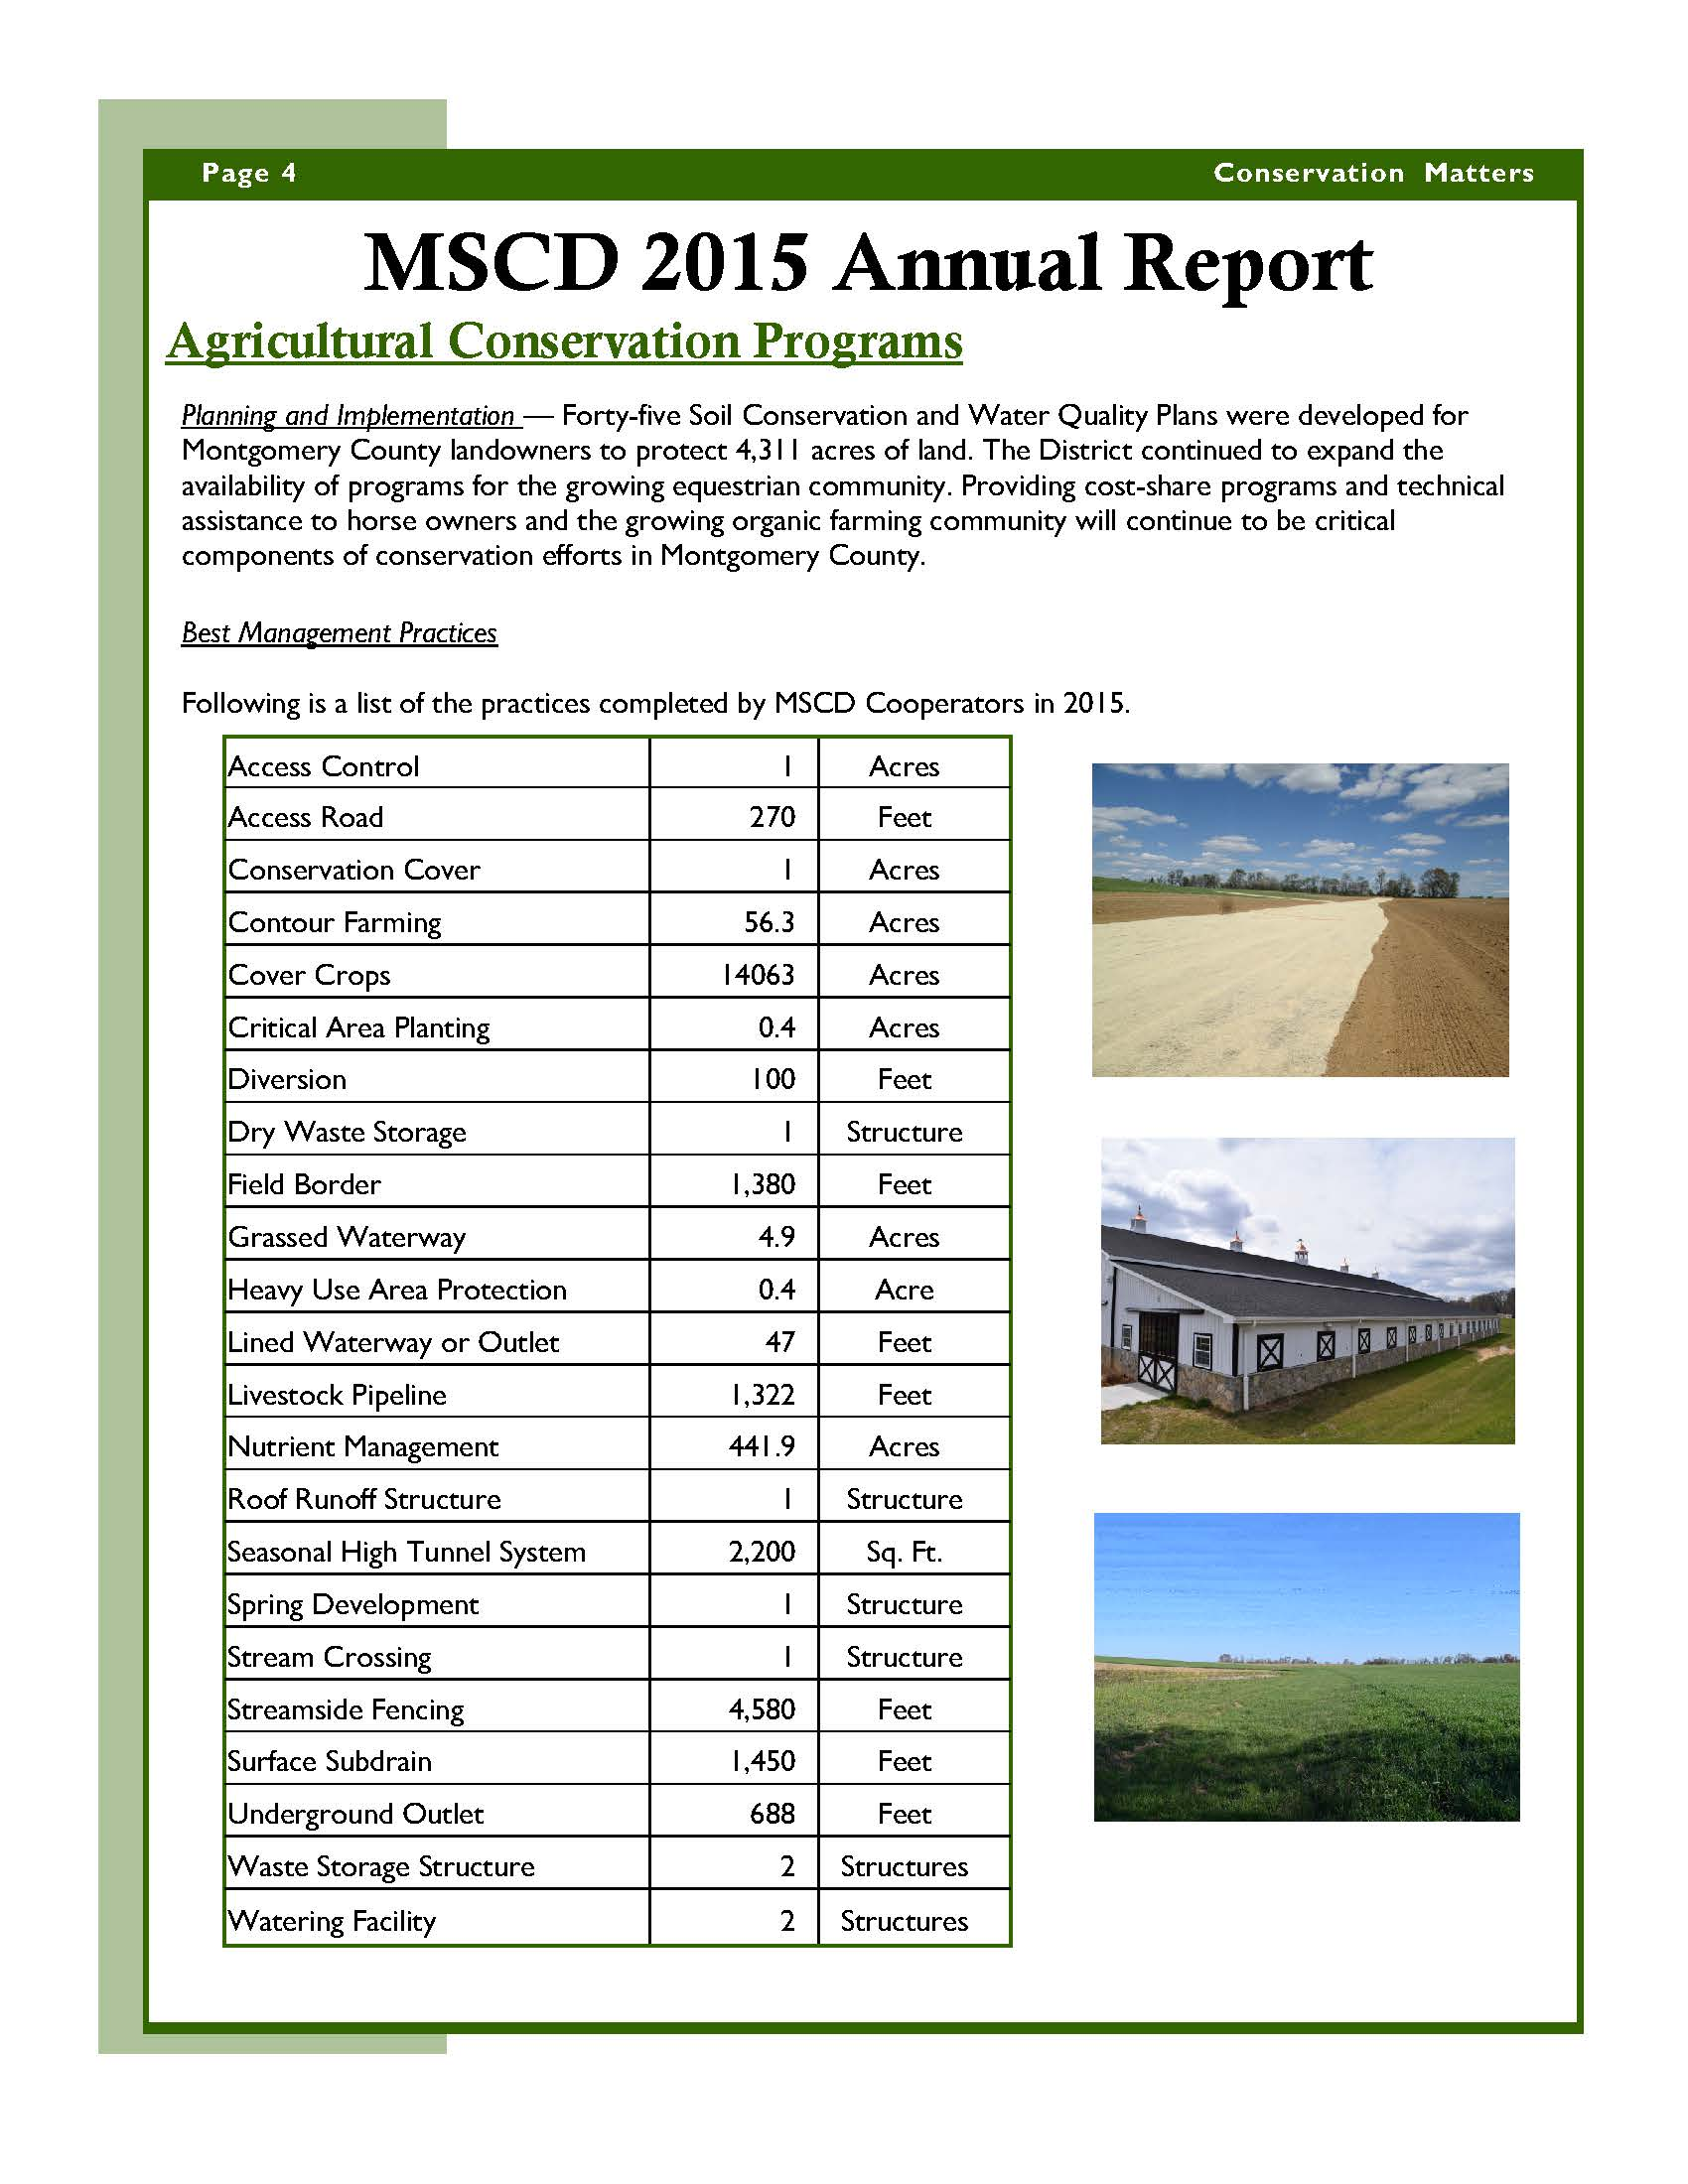 MSCD 2015 Annual Report page 4